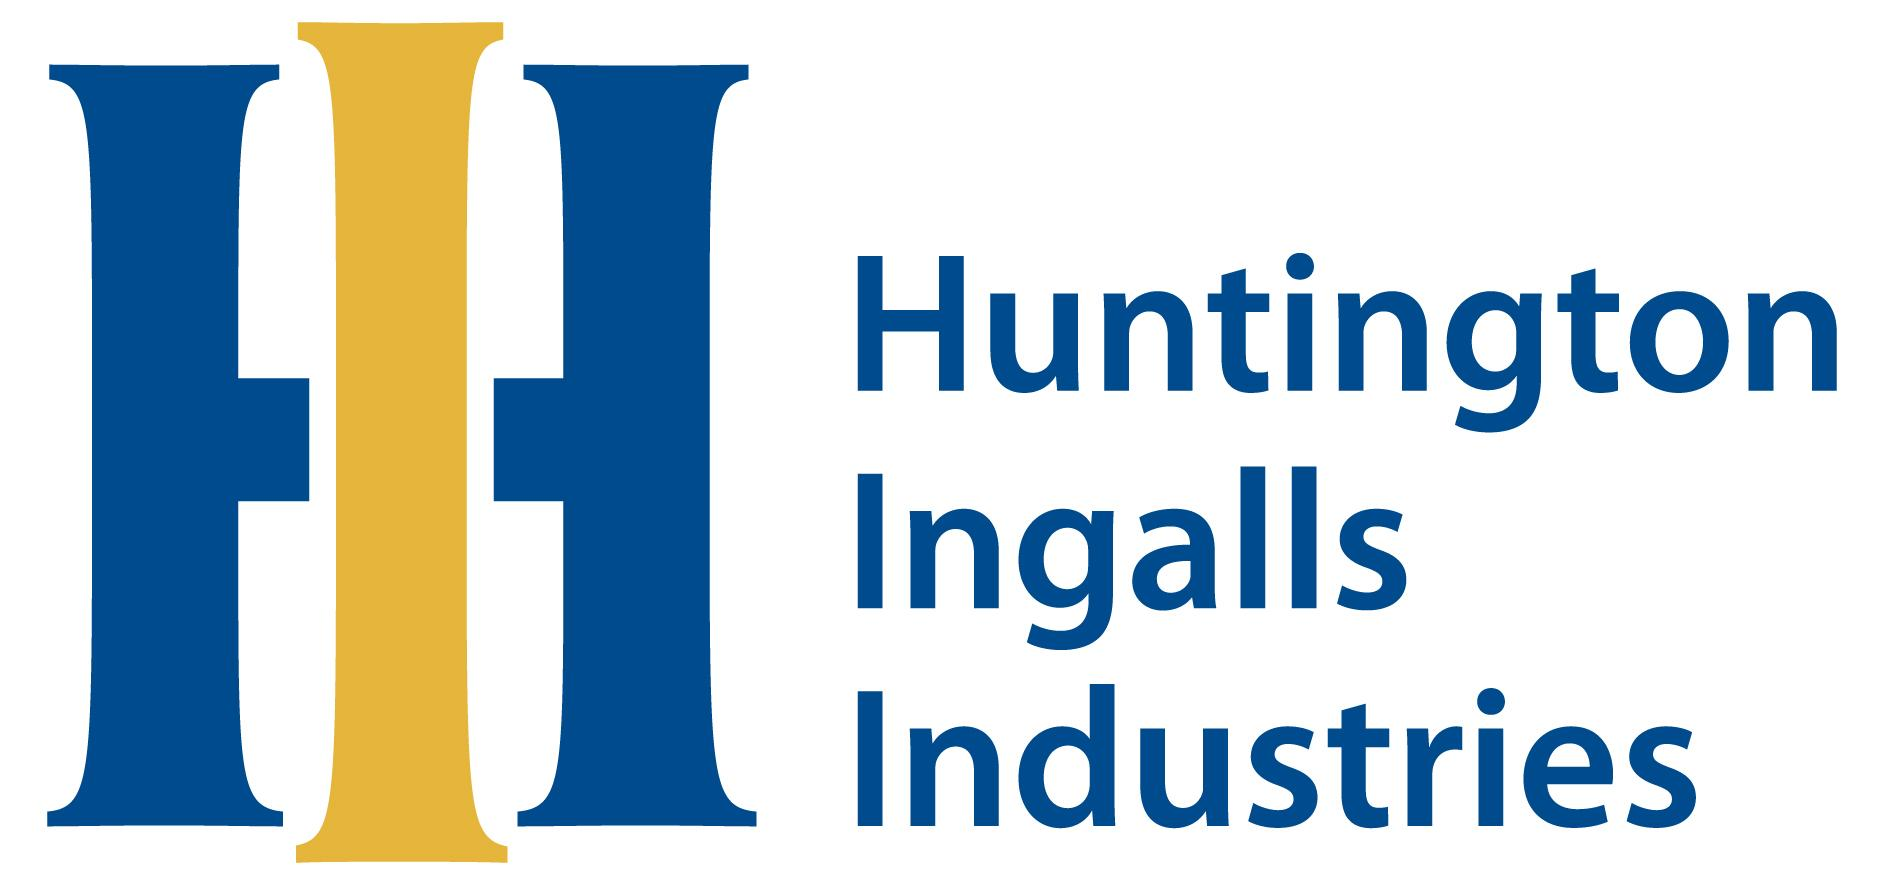 huntington ingalls industries inc common stock (nysehii  - huntington ingalls industries inc earnings top expectations as backlog grows